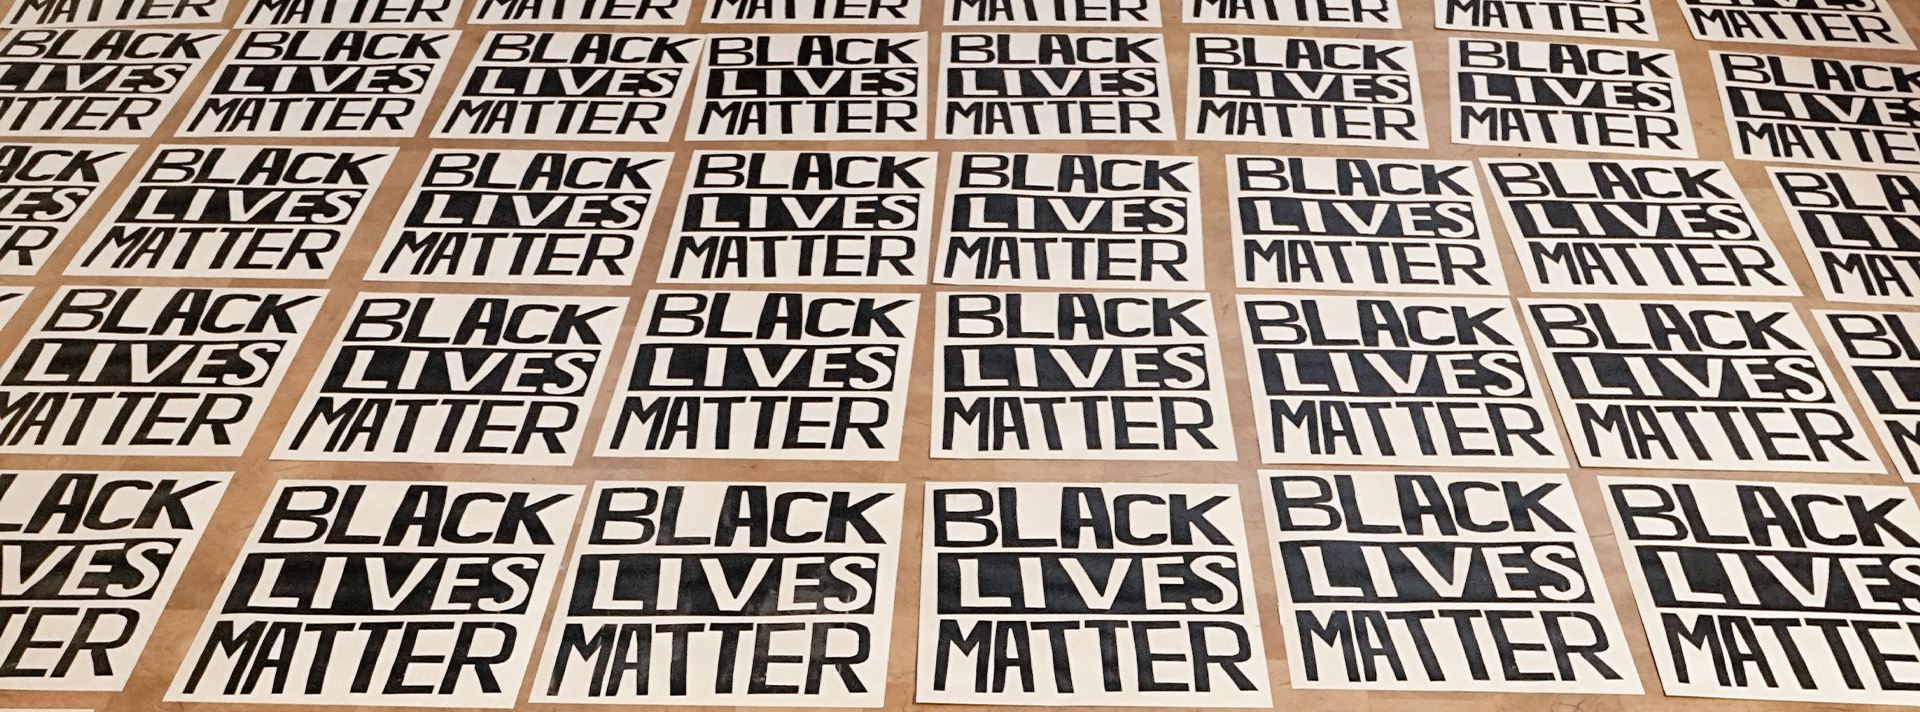 Hundreds of black lives matter posters laying on the wanda d ewing gallery floor